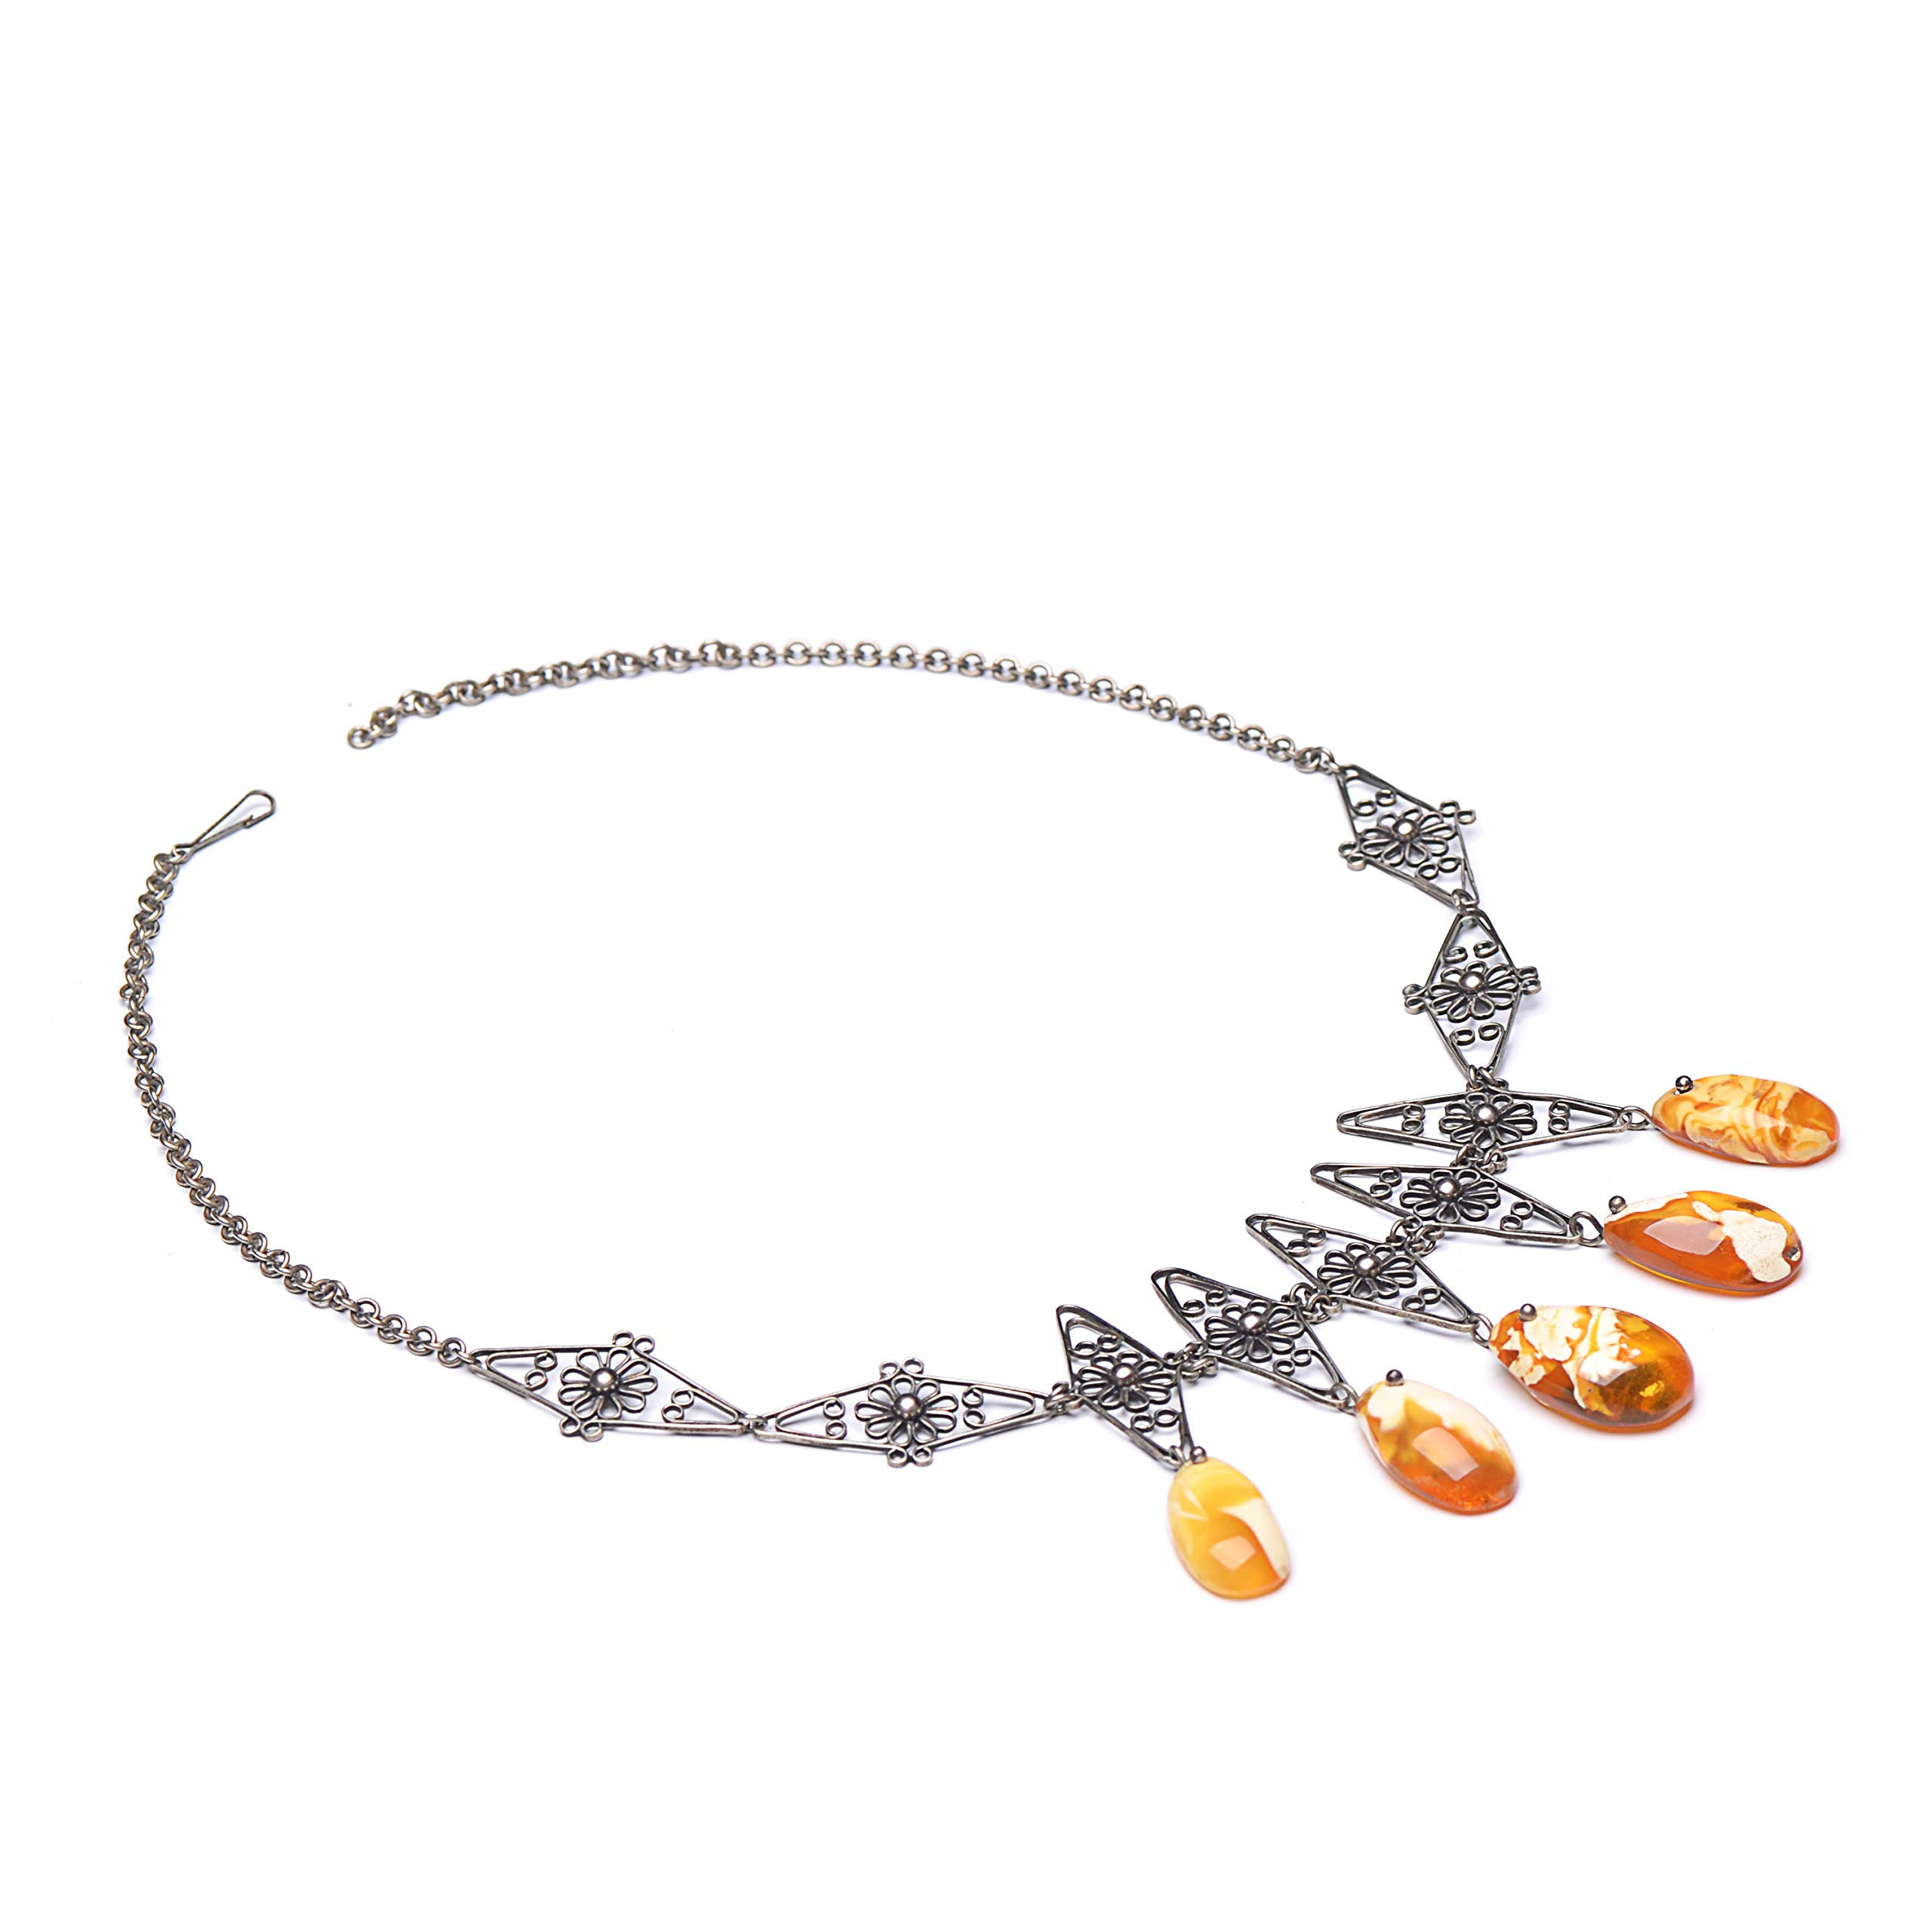 Middle Age Style Necklace - Vintage Necklace - Amber Necklace - Vintage Amber Necklace - Baltic Amber by Genuine Amber